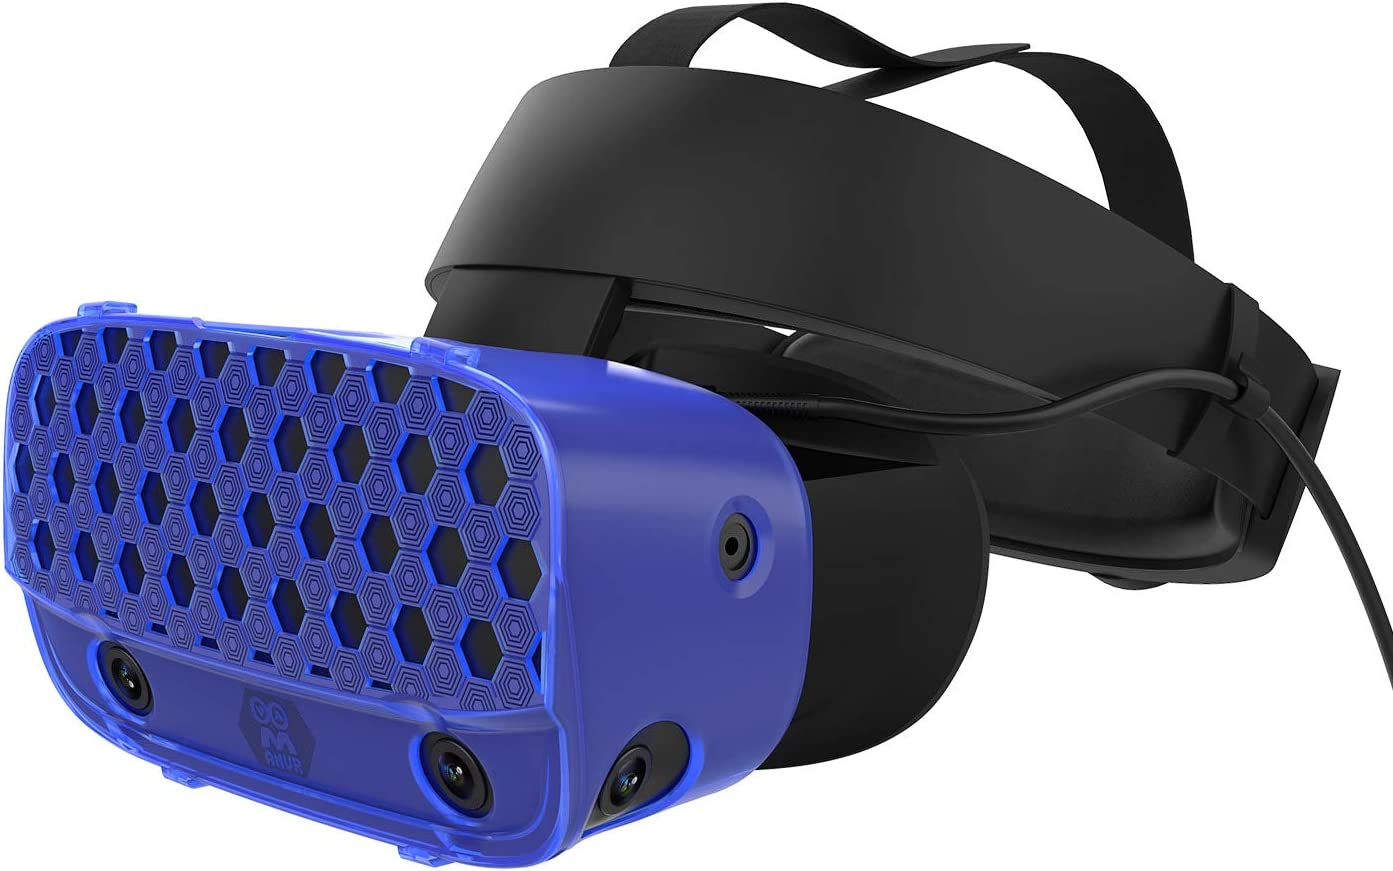 AMVR VR Headset Protective Shell, Light & Durable Cover for Oculus Rift S Accessories, Preventing Collisions and Scratches (Blue)